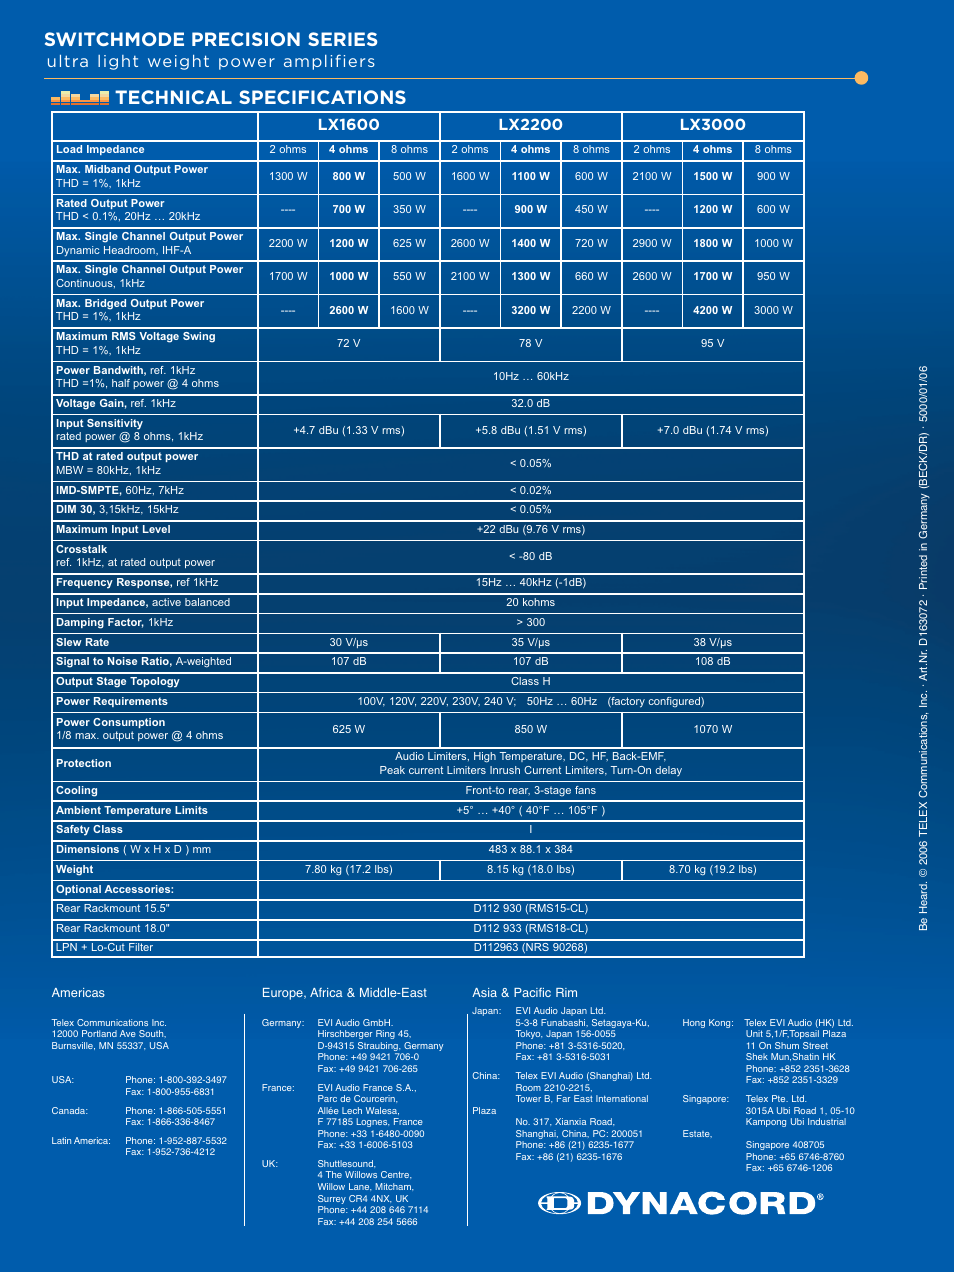 Switchmode precision series, Technical specifications, Ultra light weight  power amplifiers | Dynacord LX3000 User Manual | Page 4 / 4